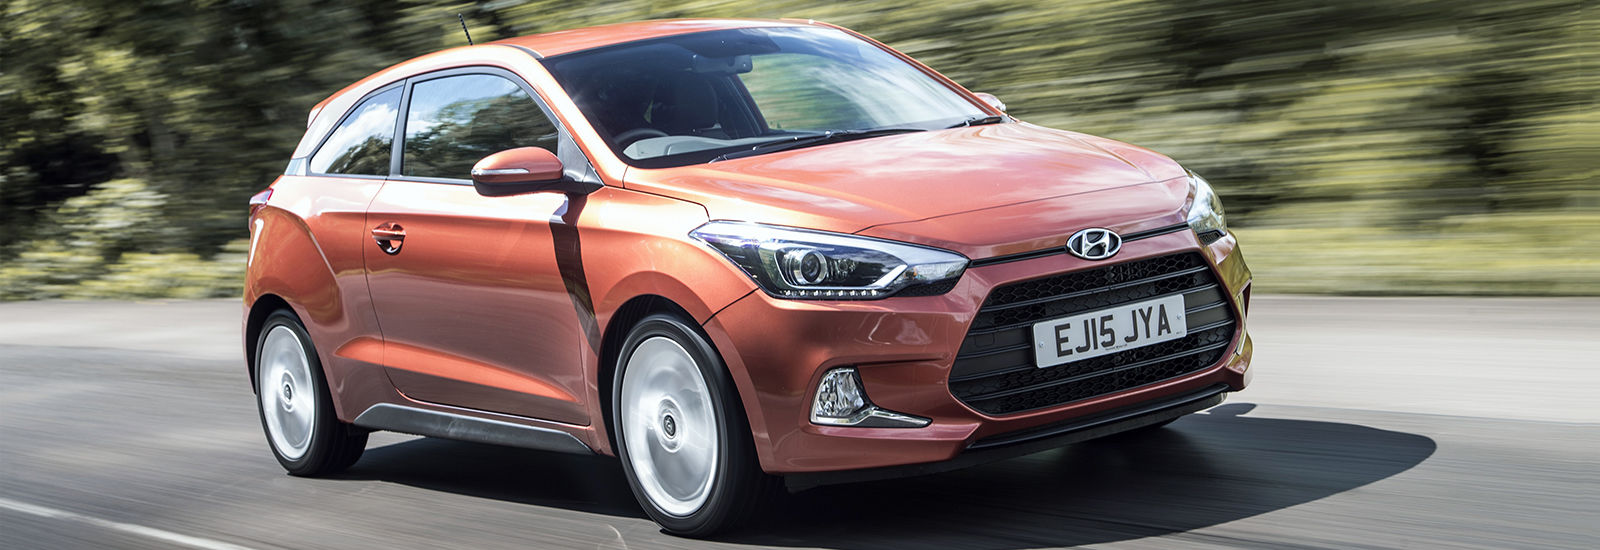 Spec up a ford fiesta through our deals page to find the best savings on offer